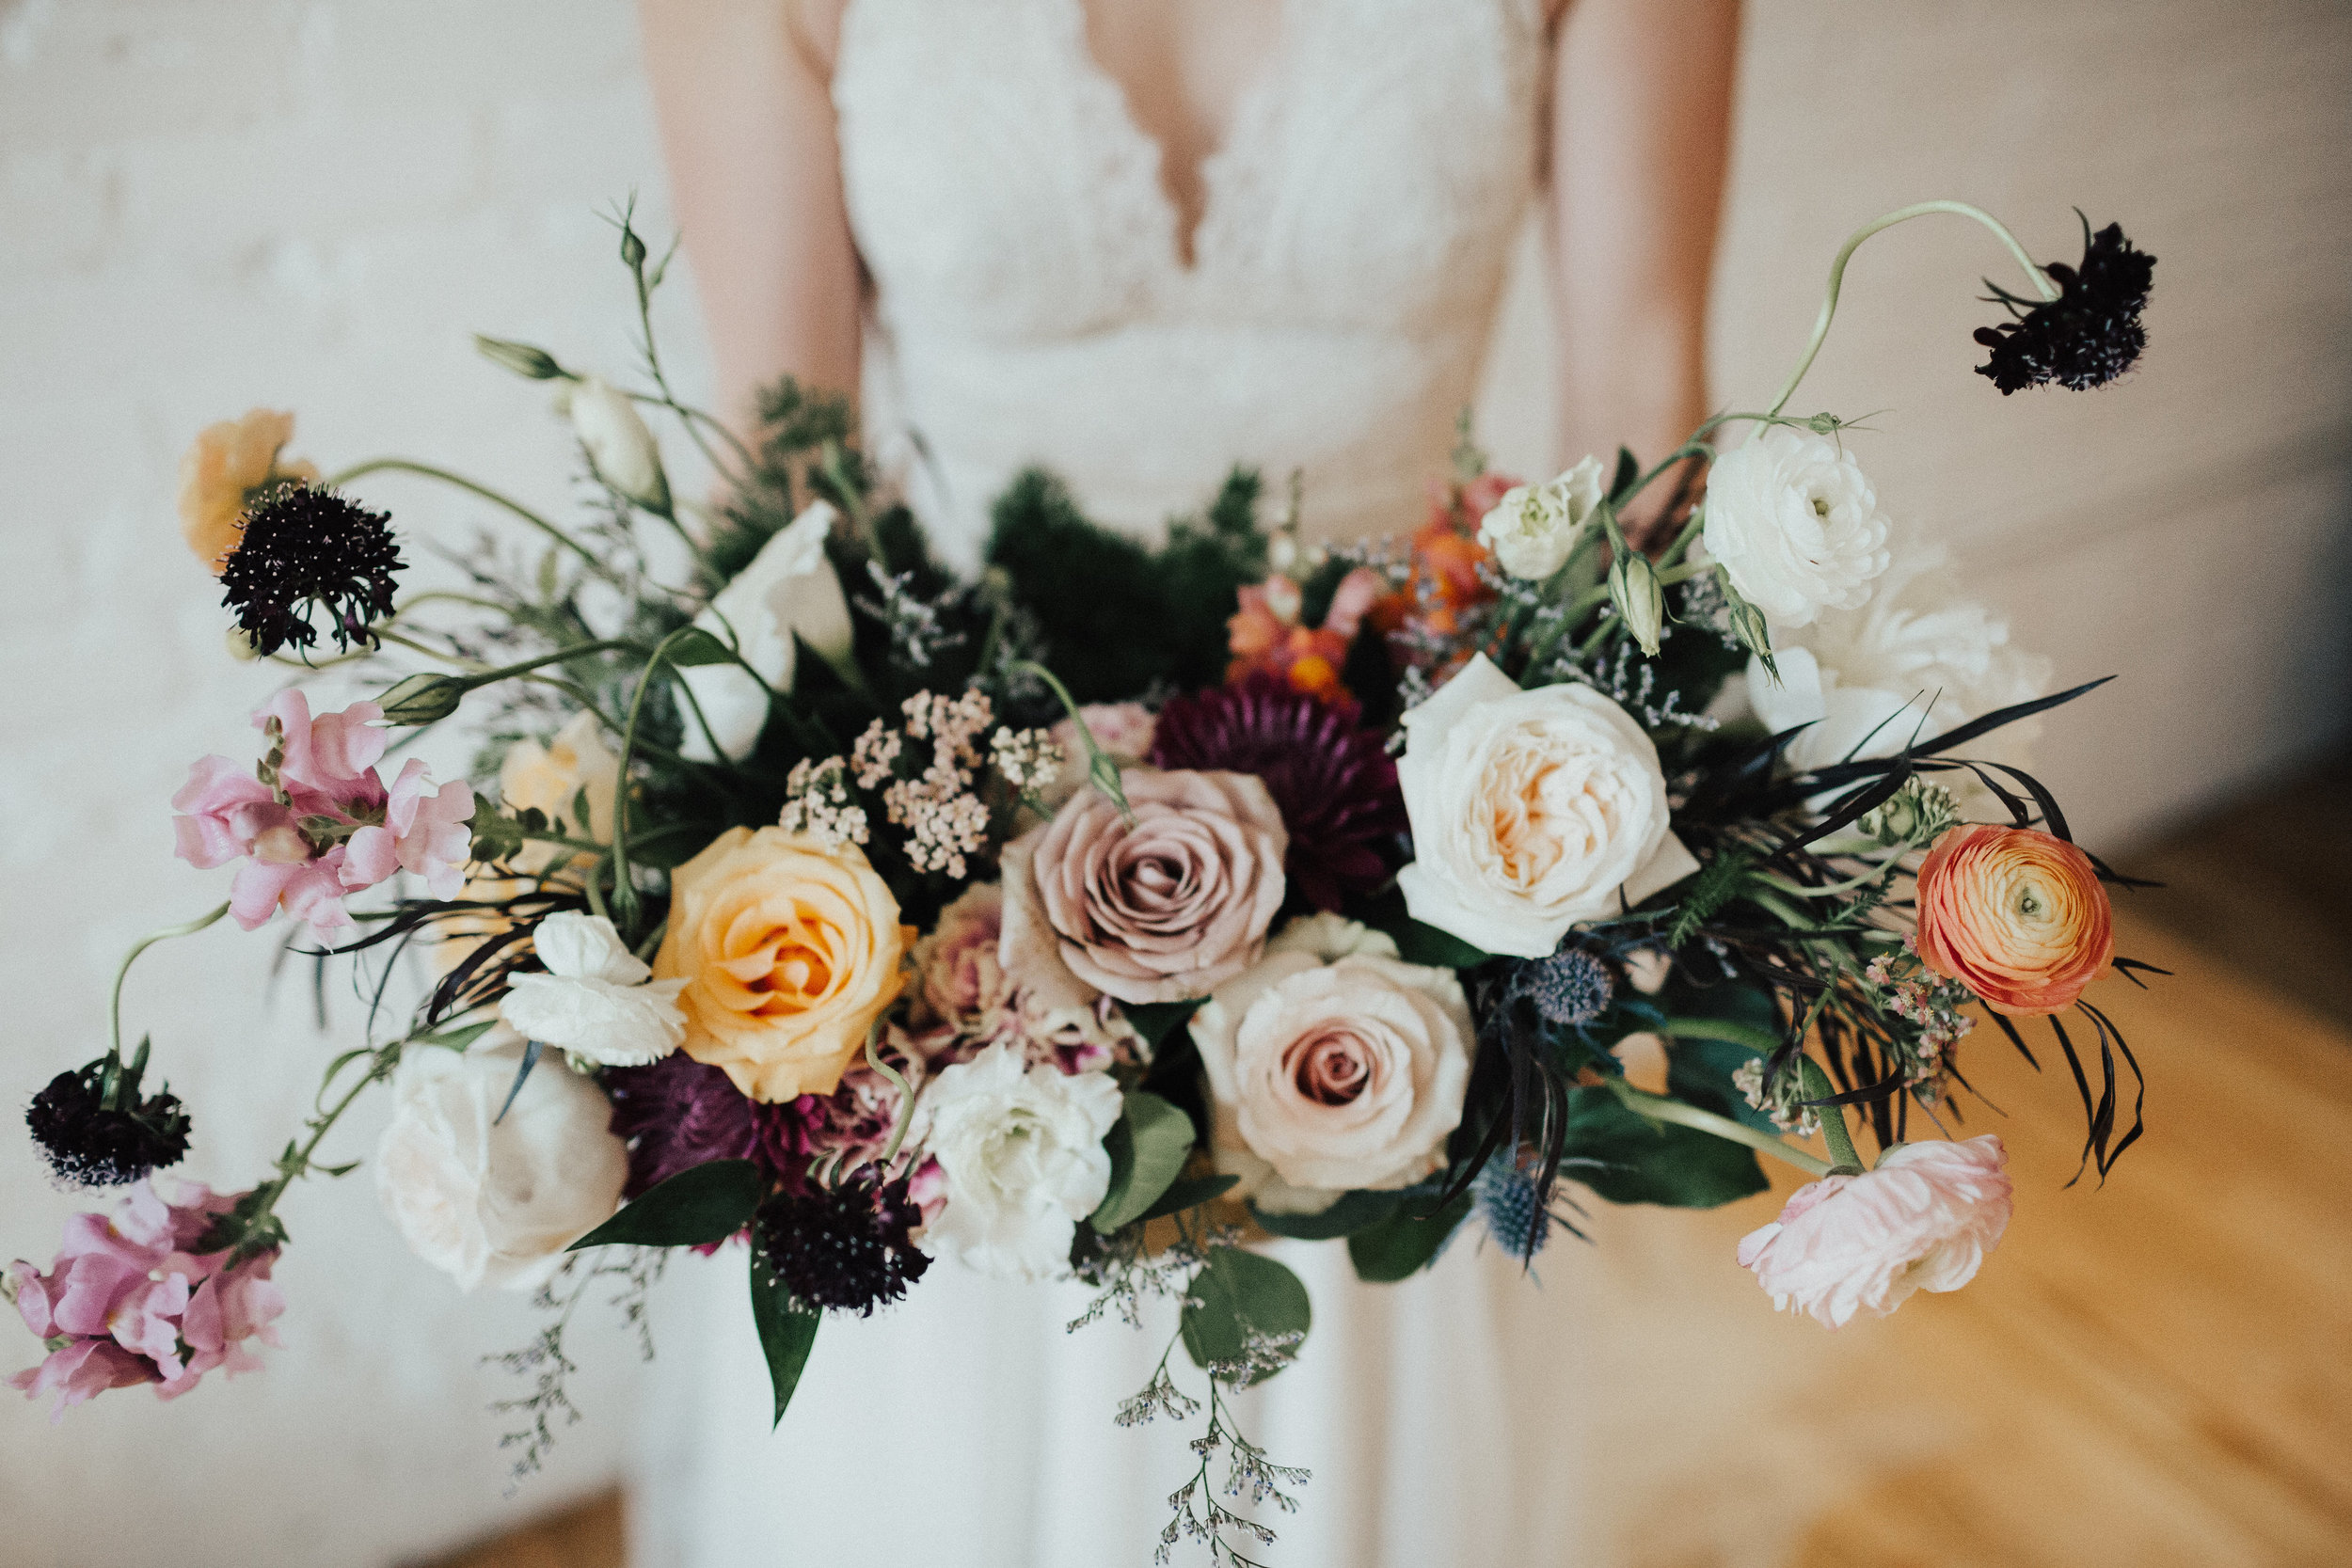 kcmo weddings wild hill florists heart and soul kc florist kc flowers kc wedding florist